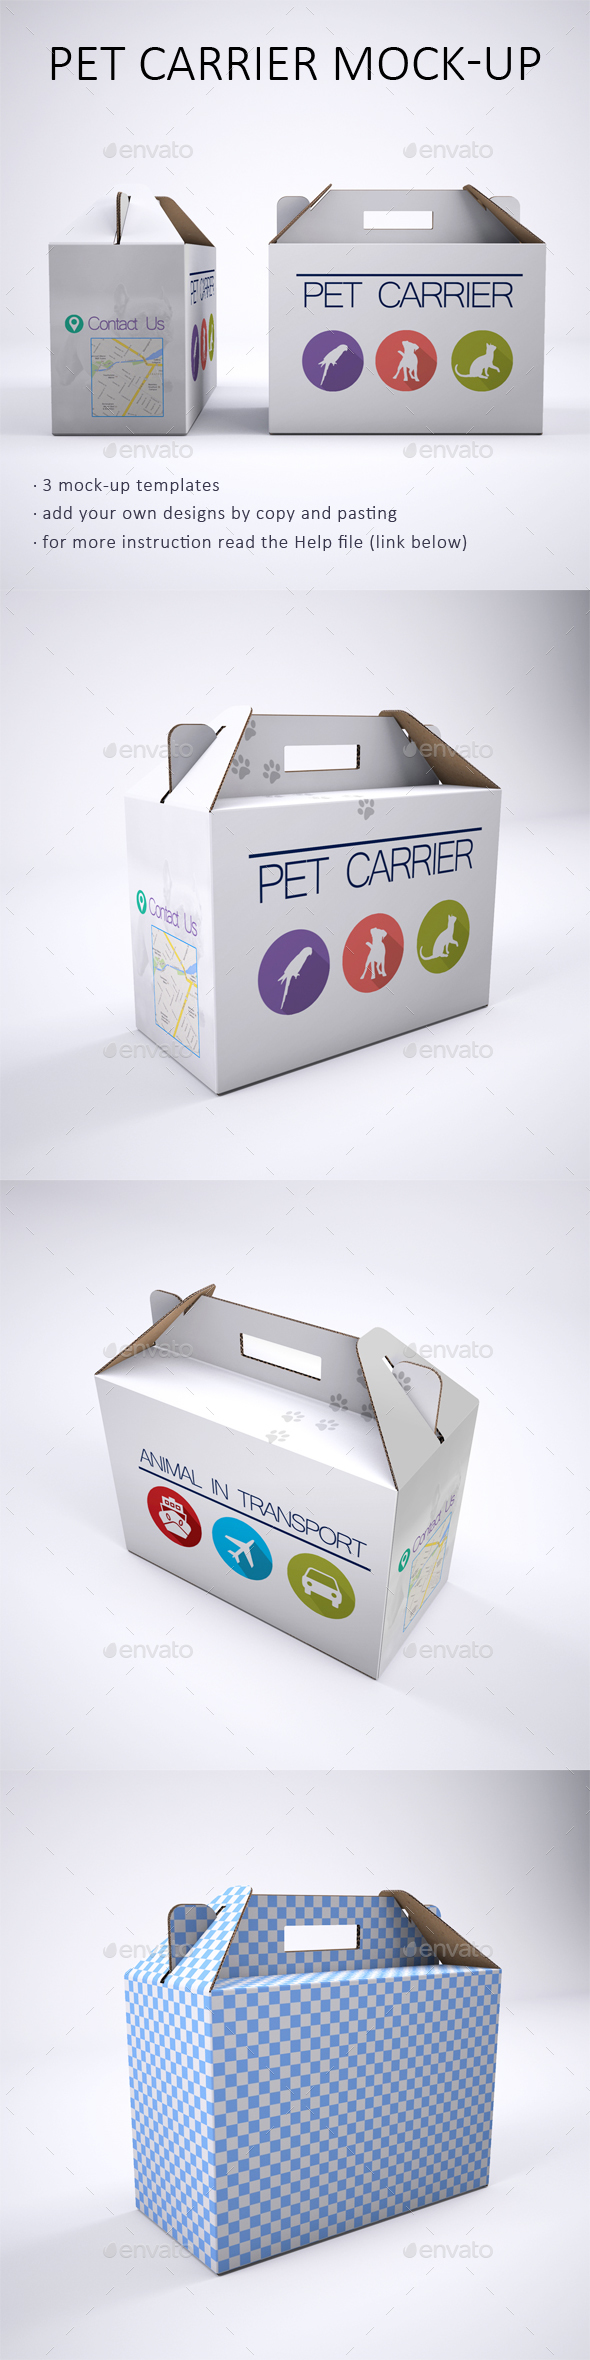 Pet Carrier Cardboard Box Mock-Up - Packaging Product Mock-Ups